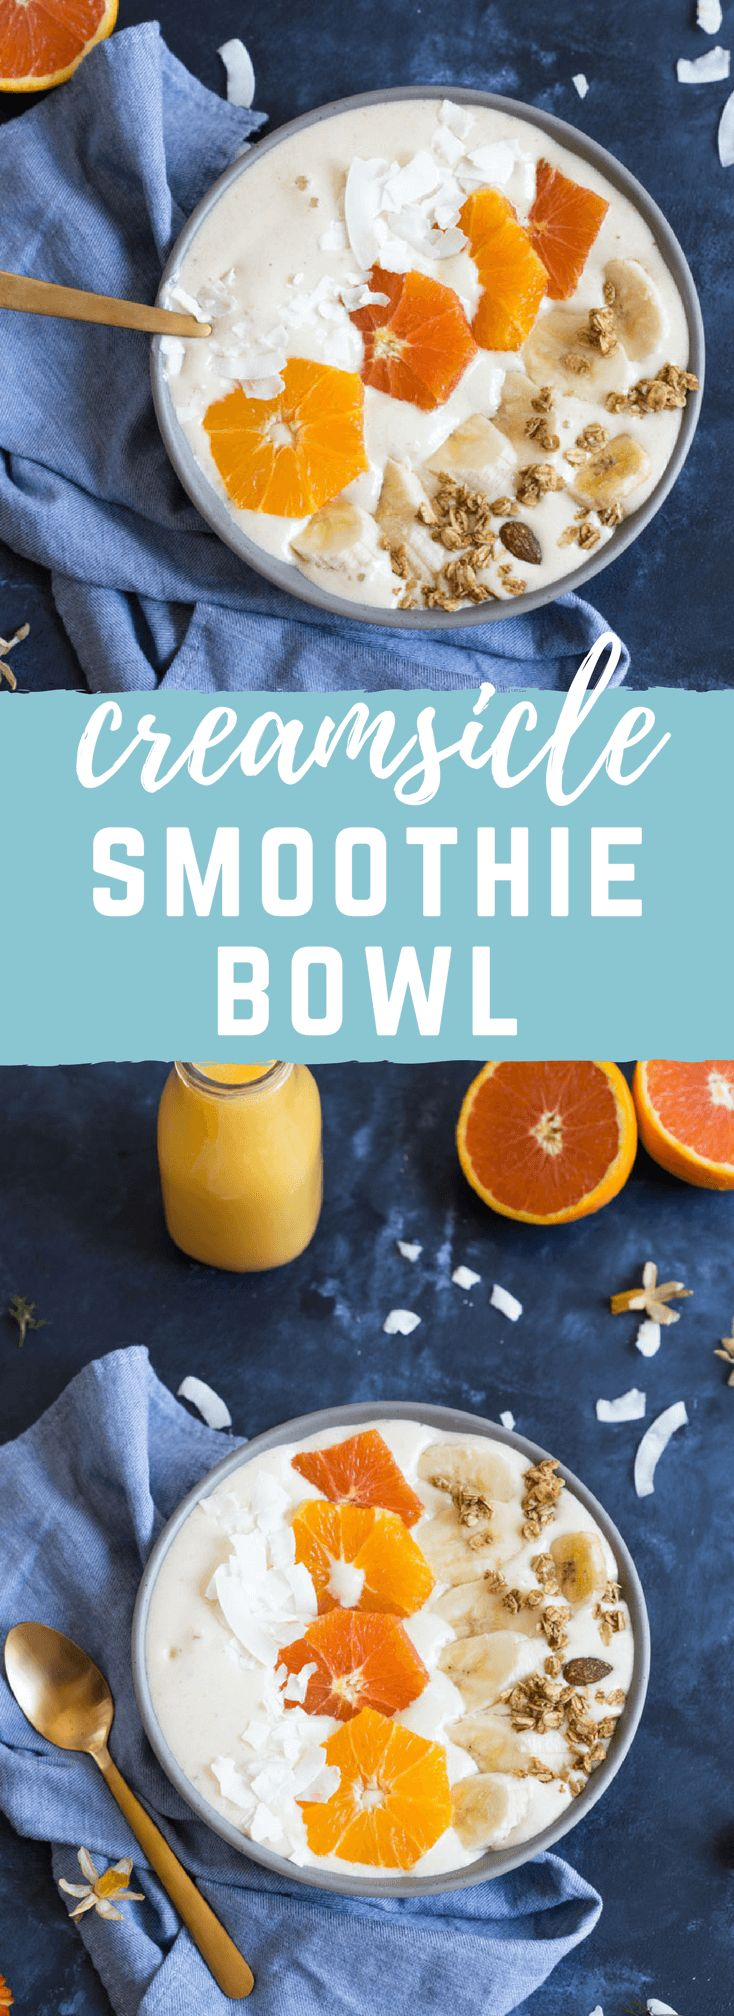 Orange Creamsicle Smoothie Bowl! Creamy, dreamy and everything you want in a smoothie that you can spoon. I love spooning my smoothies! Spooning > Sipping. @FloridaOrangeJuice #ad #AmazingInside